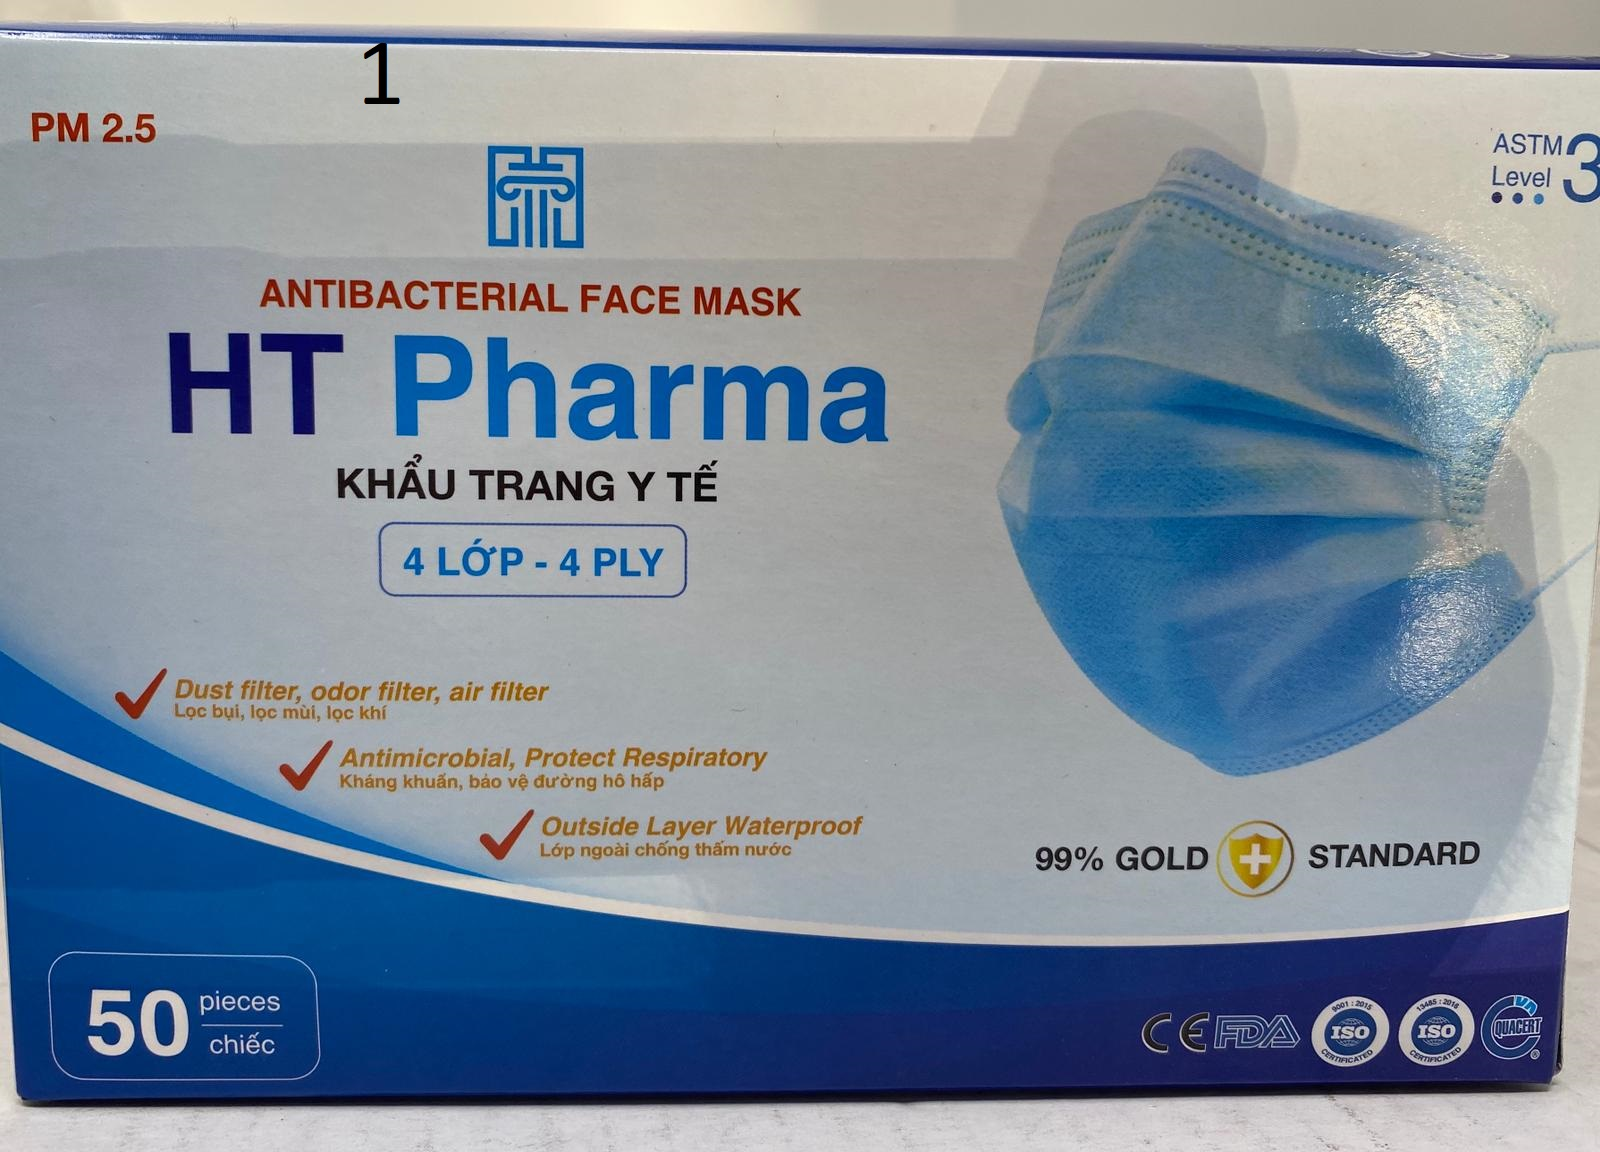 ASTM Level 2 & 3 Disposable Protective Face Mask USA